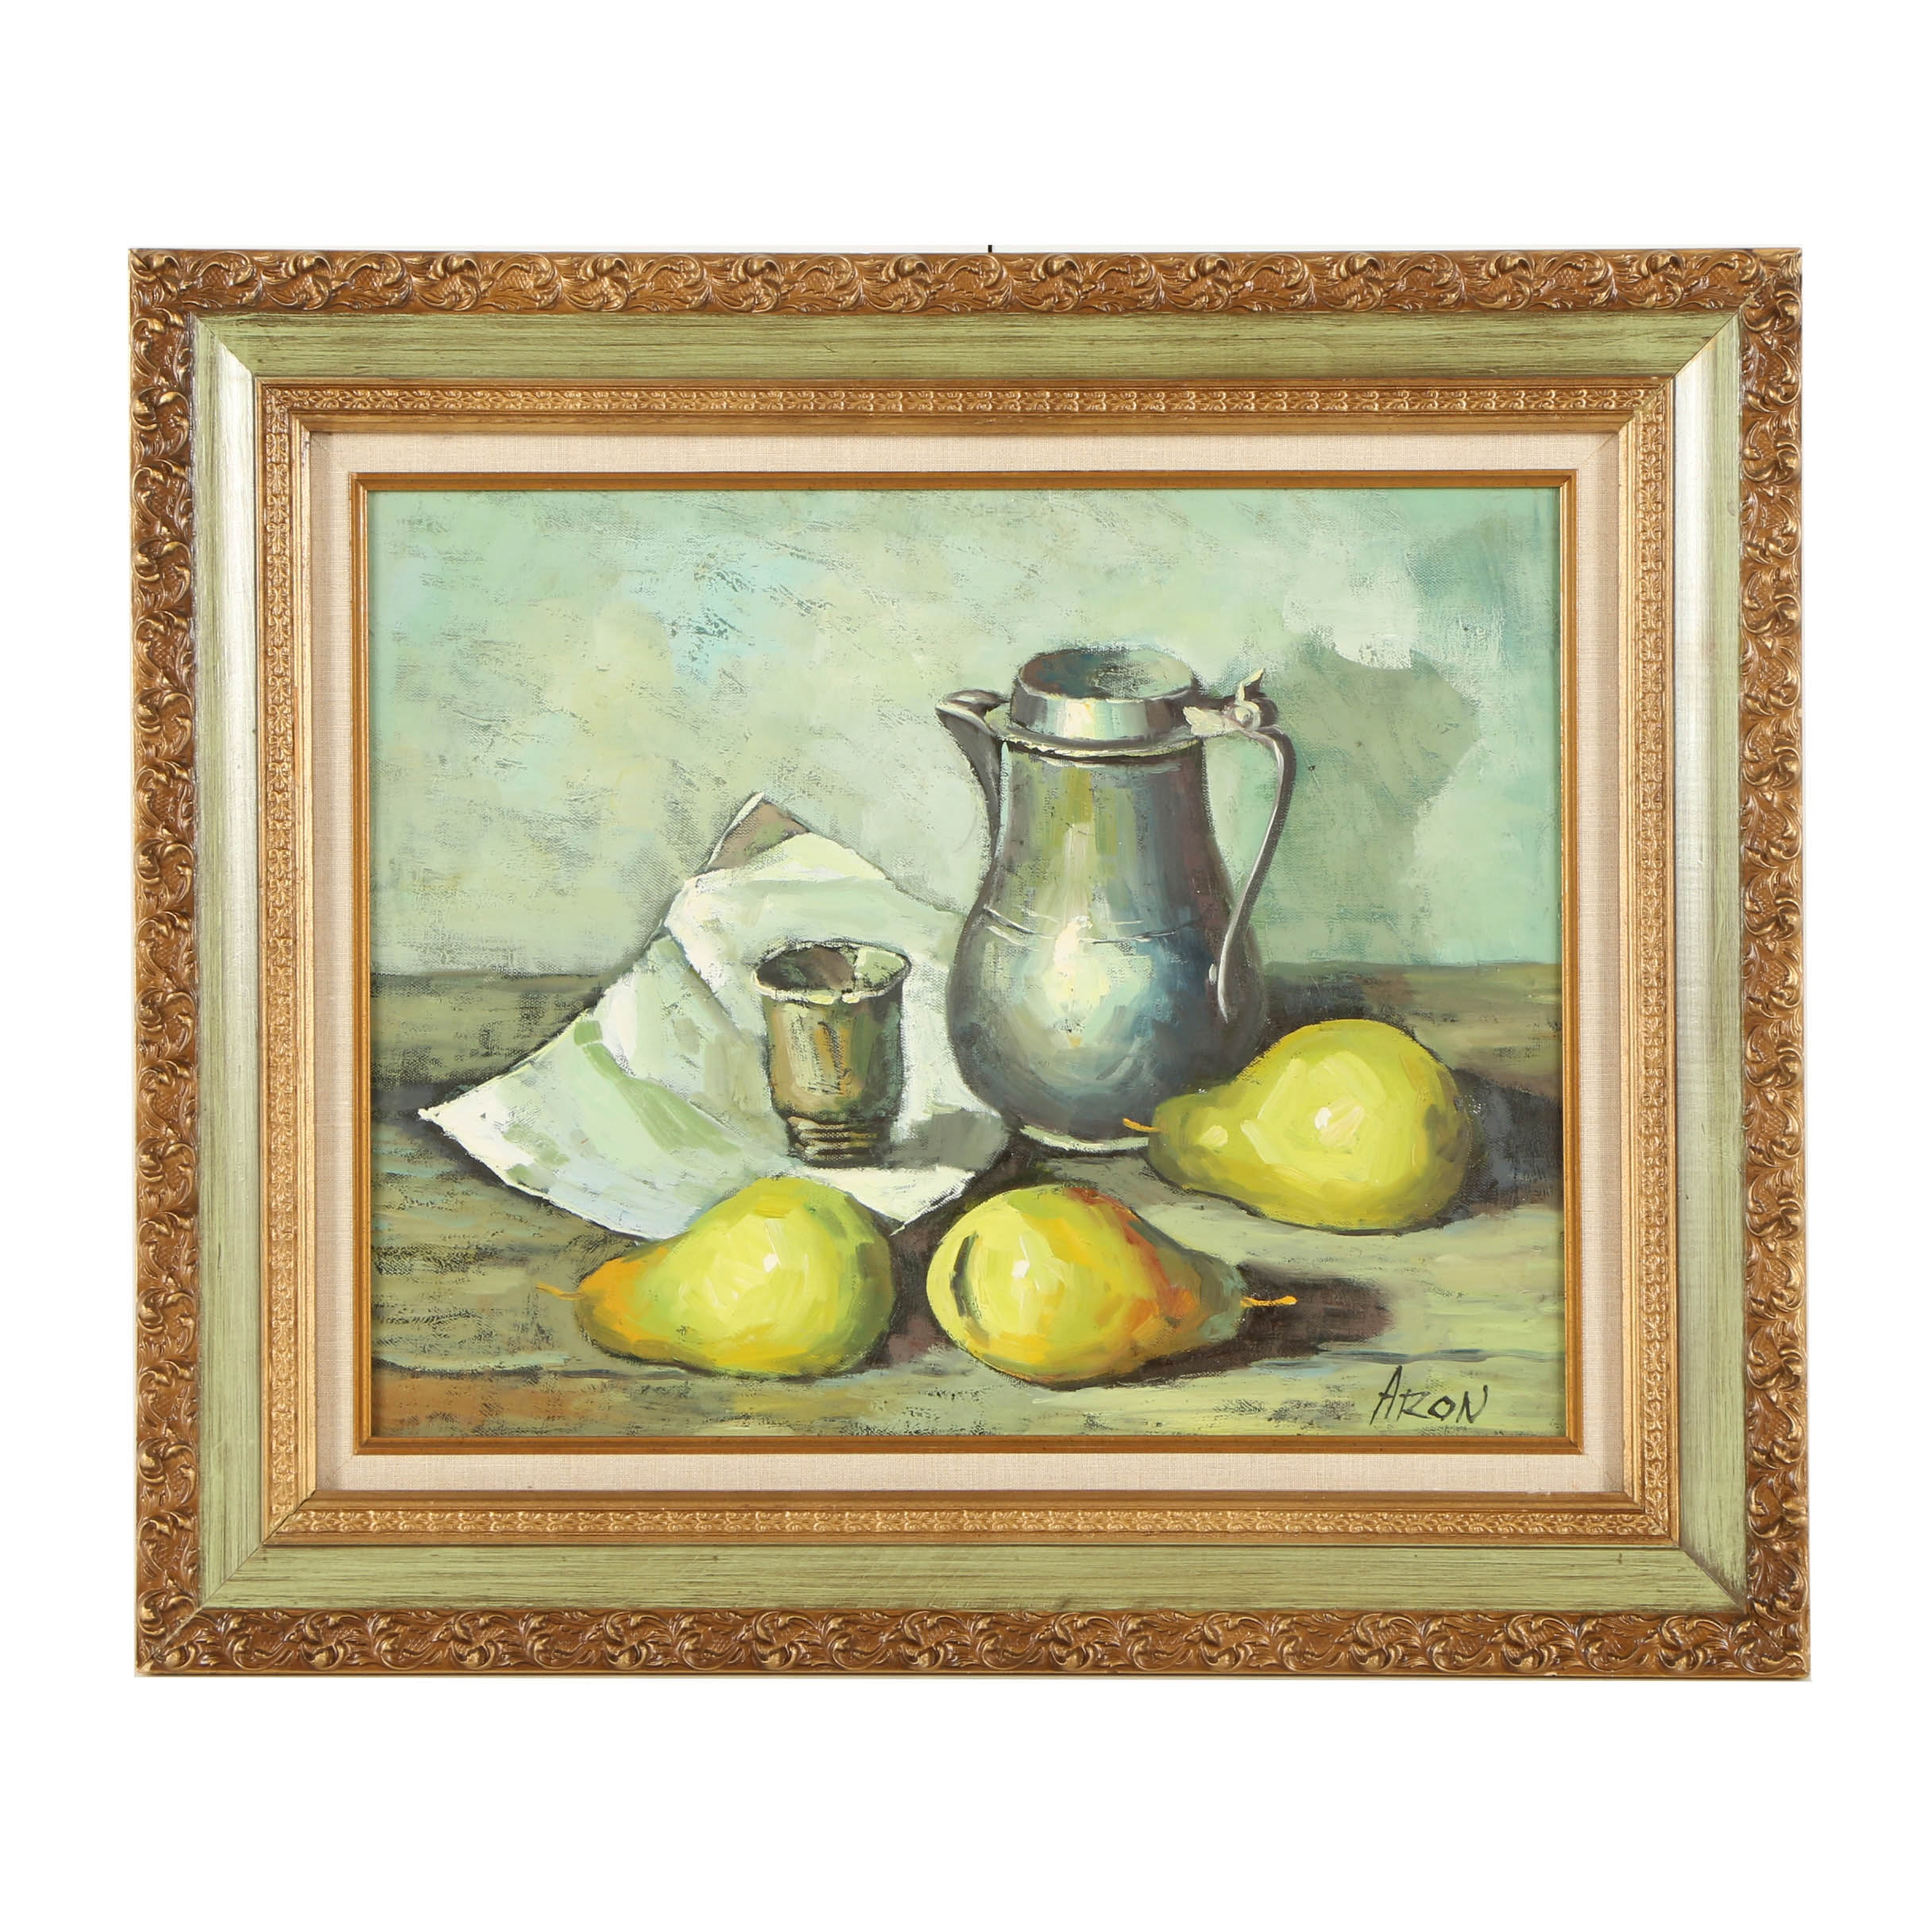 Aron Oil Painting of a Still Life with Pears